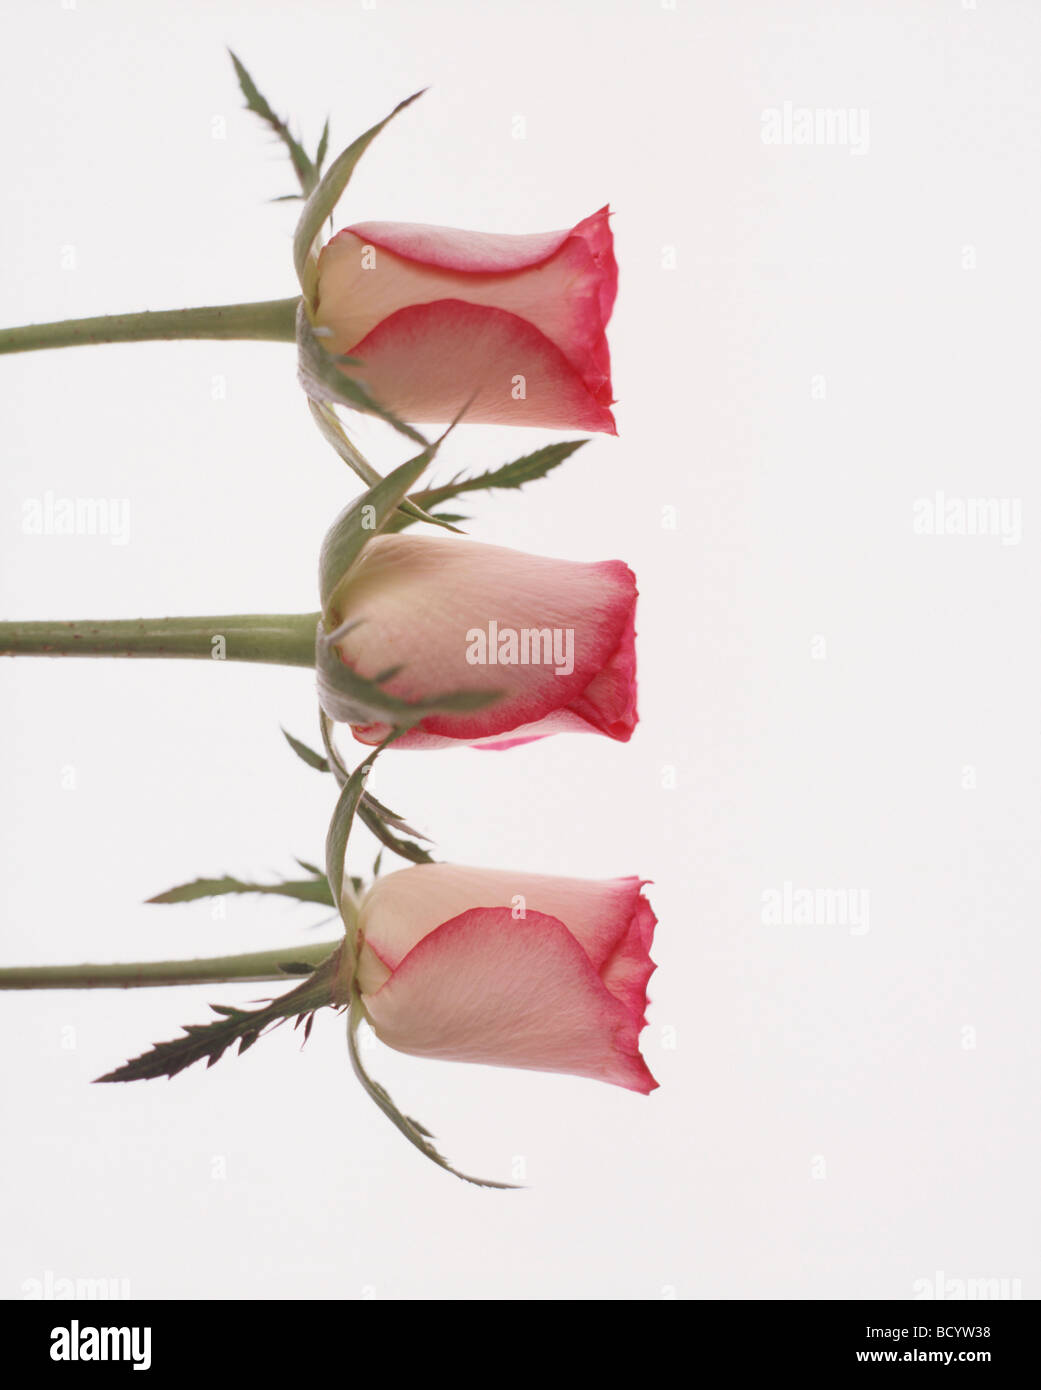 Three rose buds on white background - Stock Image